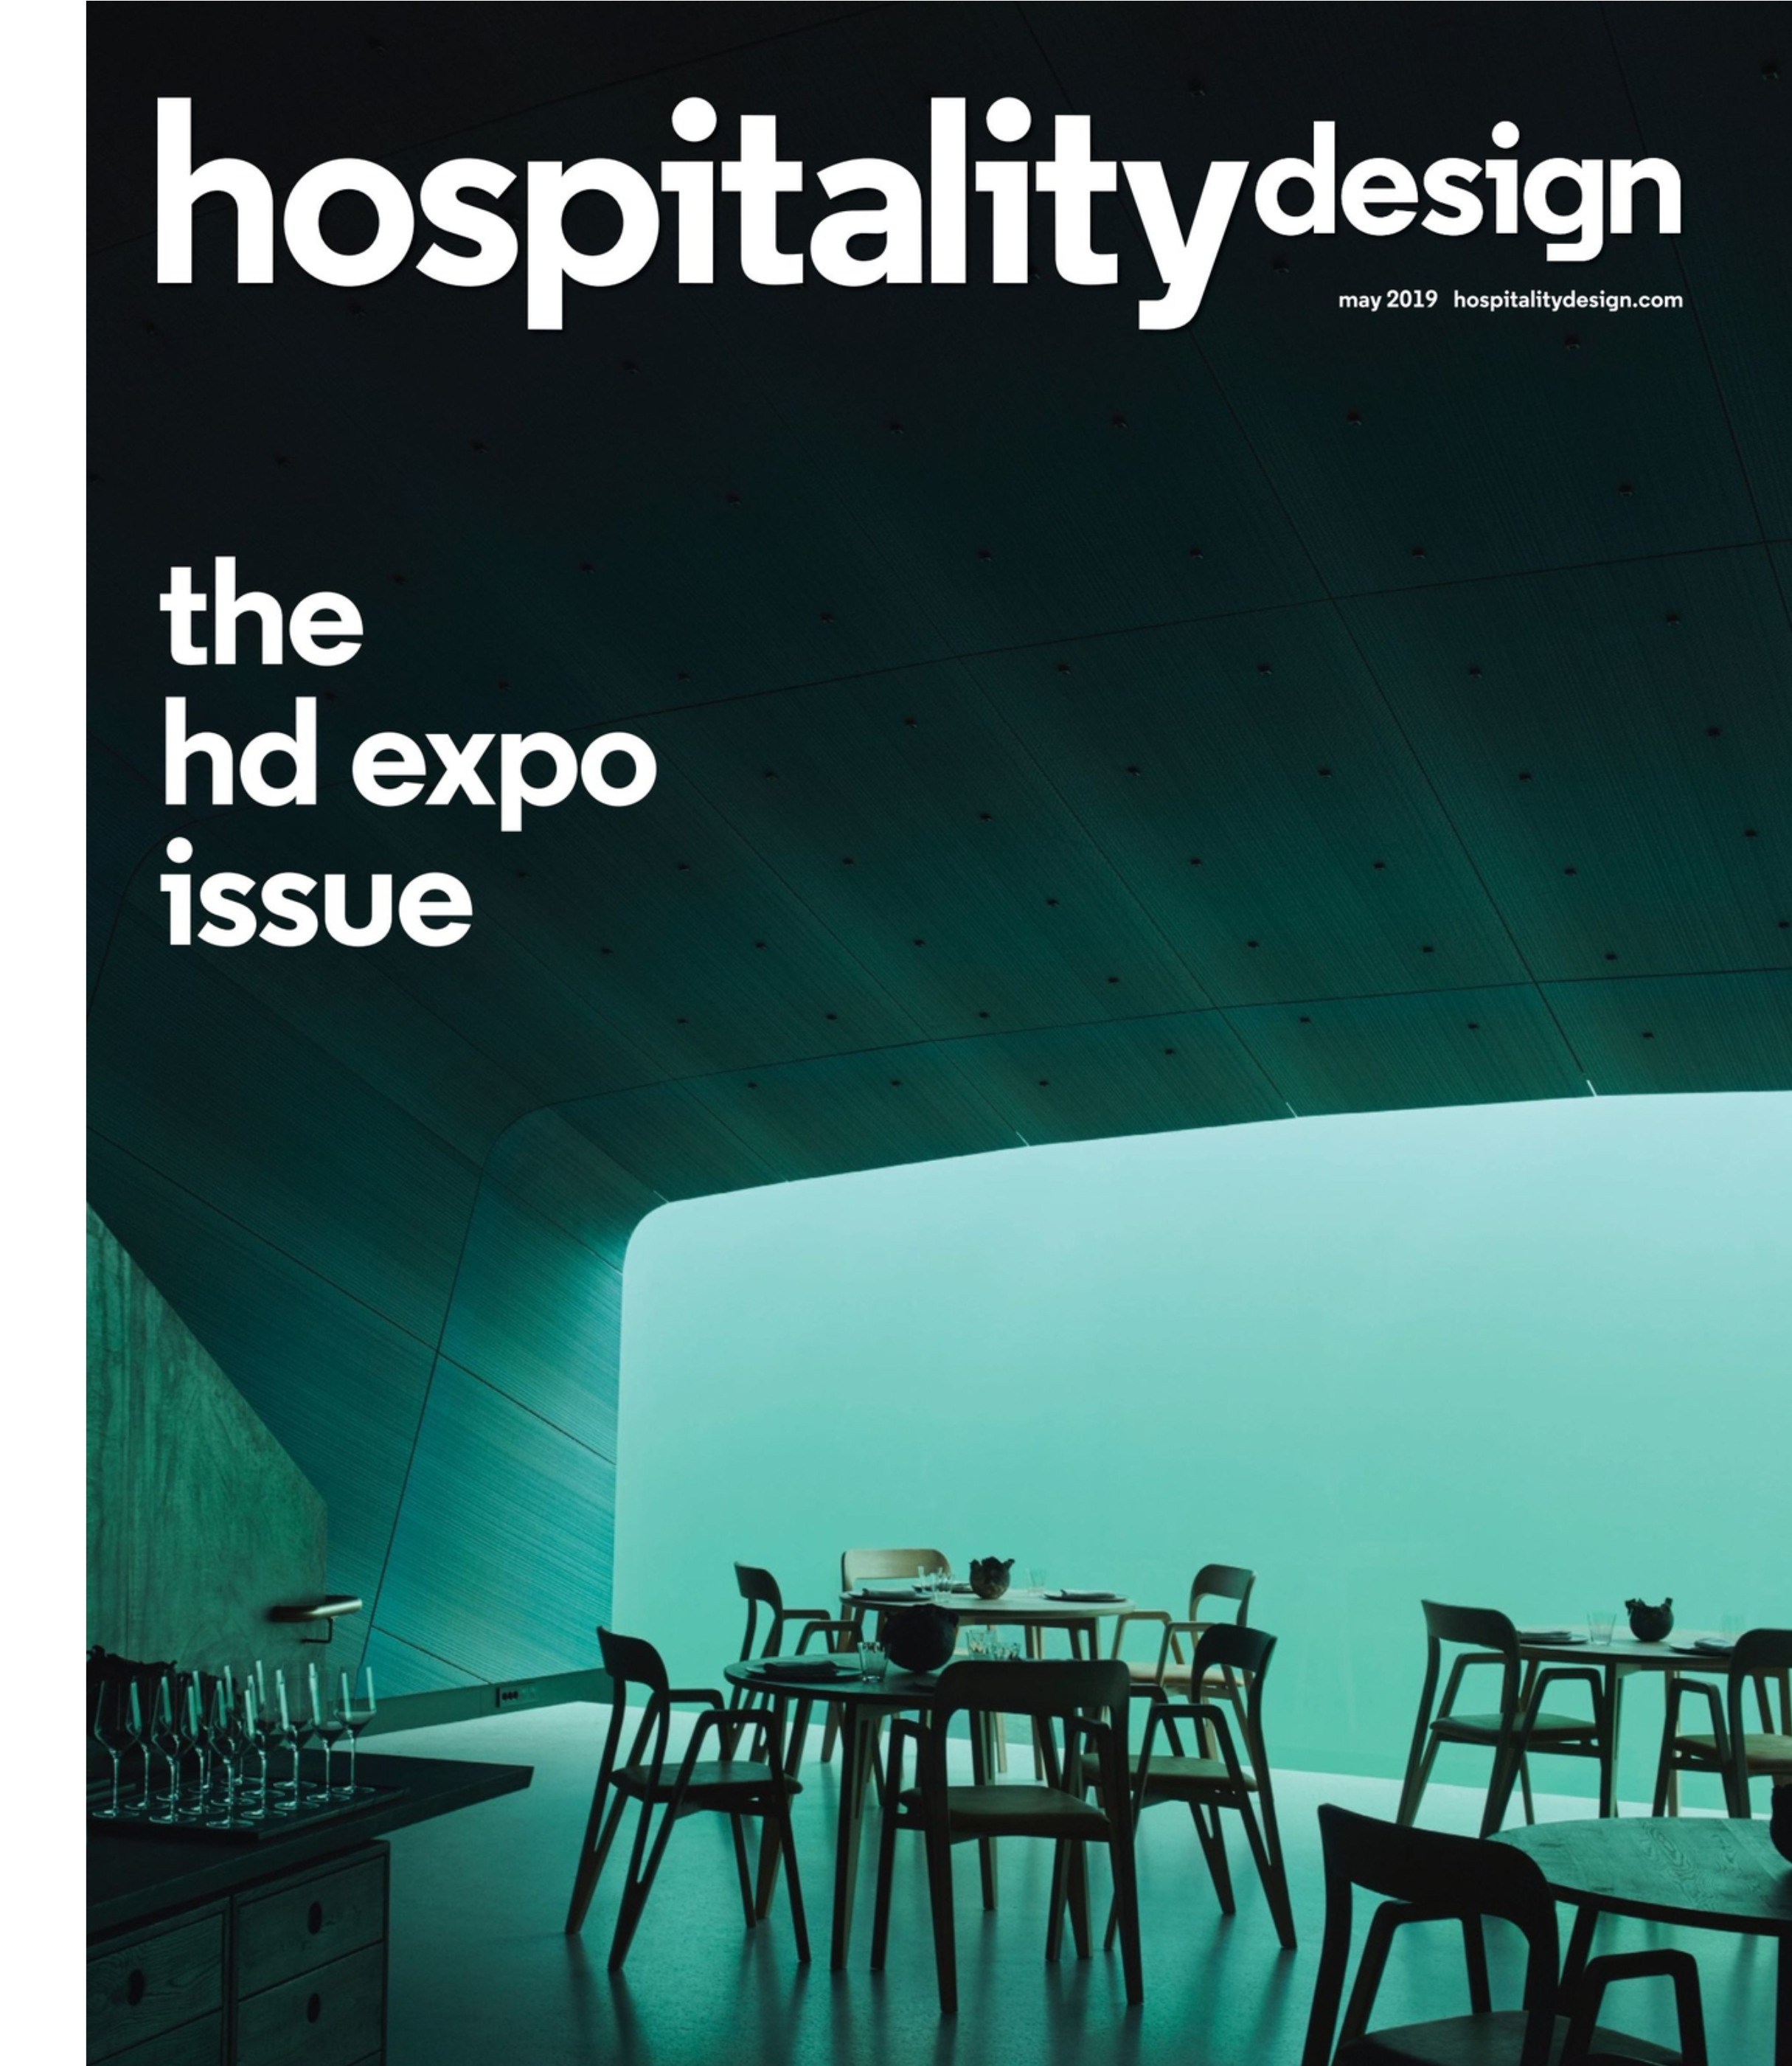 Hospitality Design - May 2019 Cover -.jpg